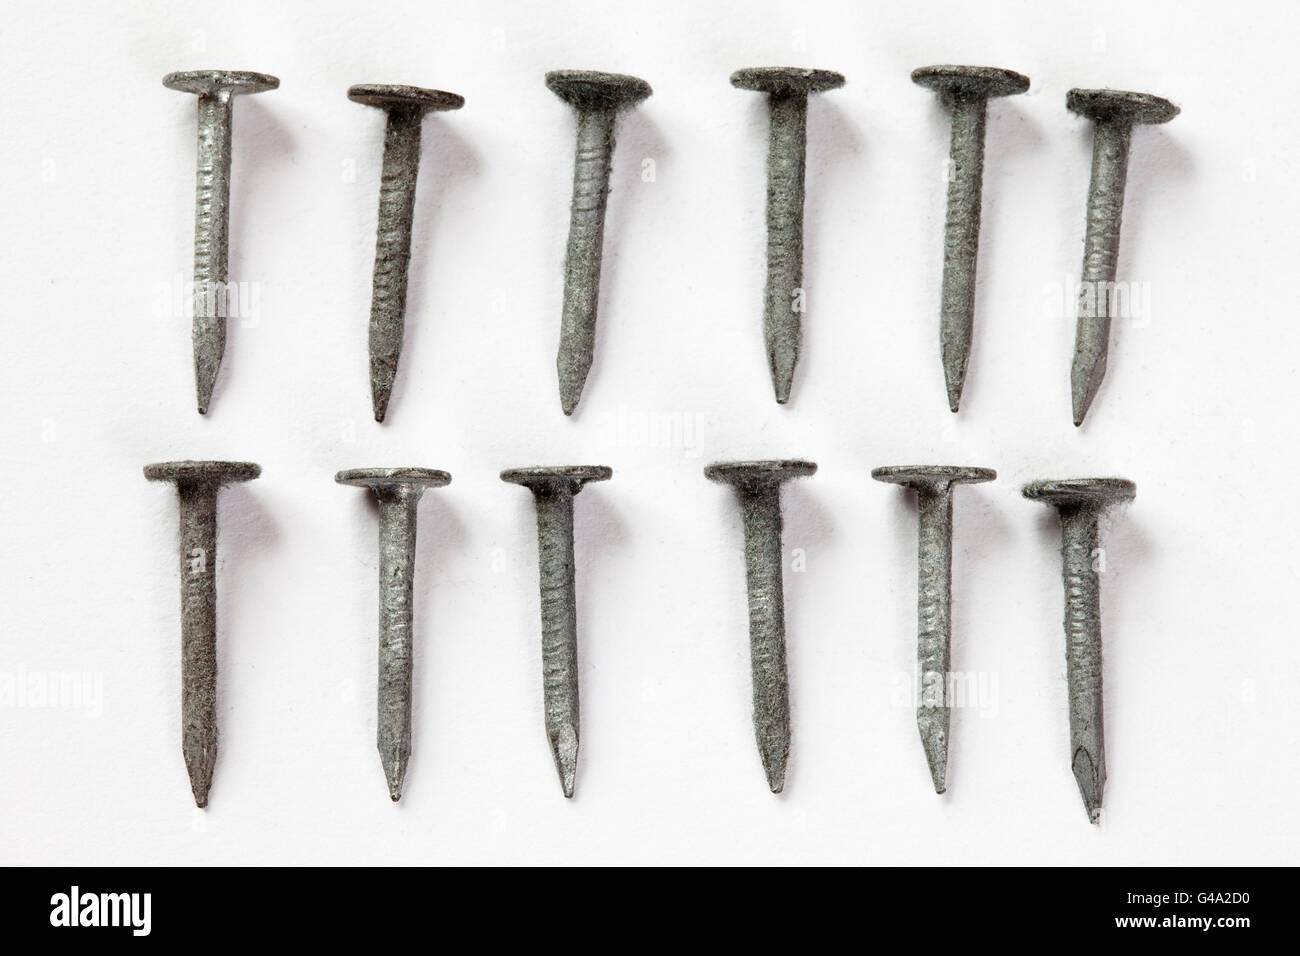 Galvanized roofing nails - Stock Image